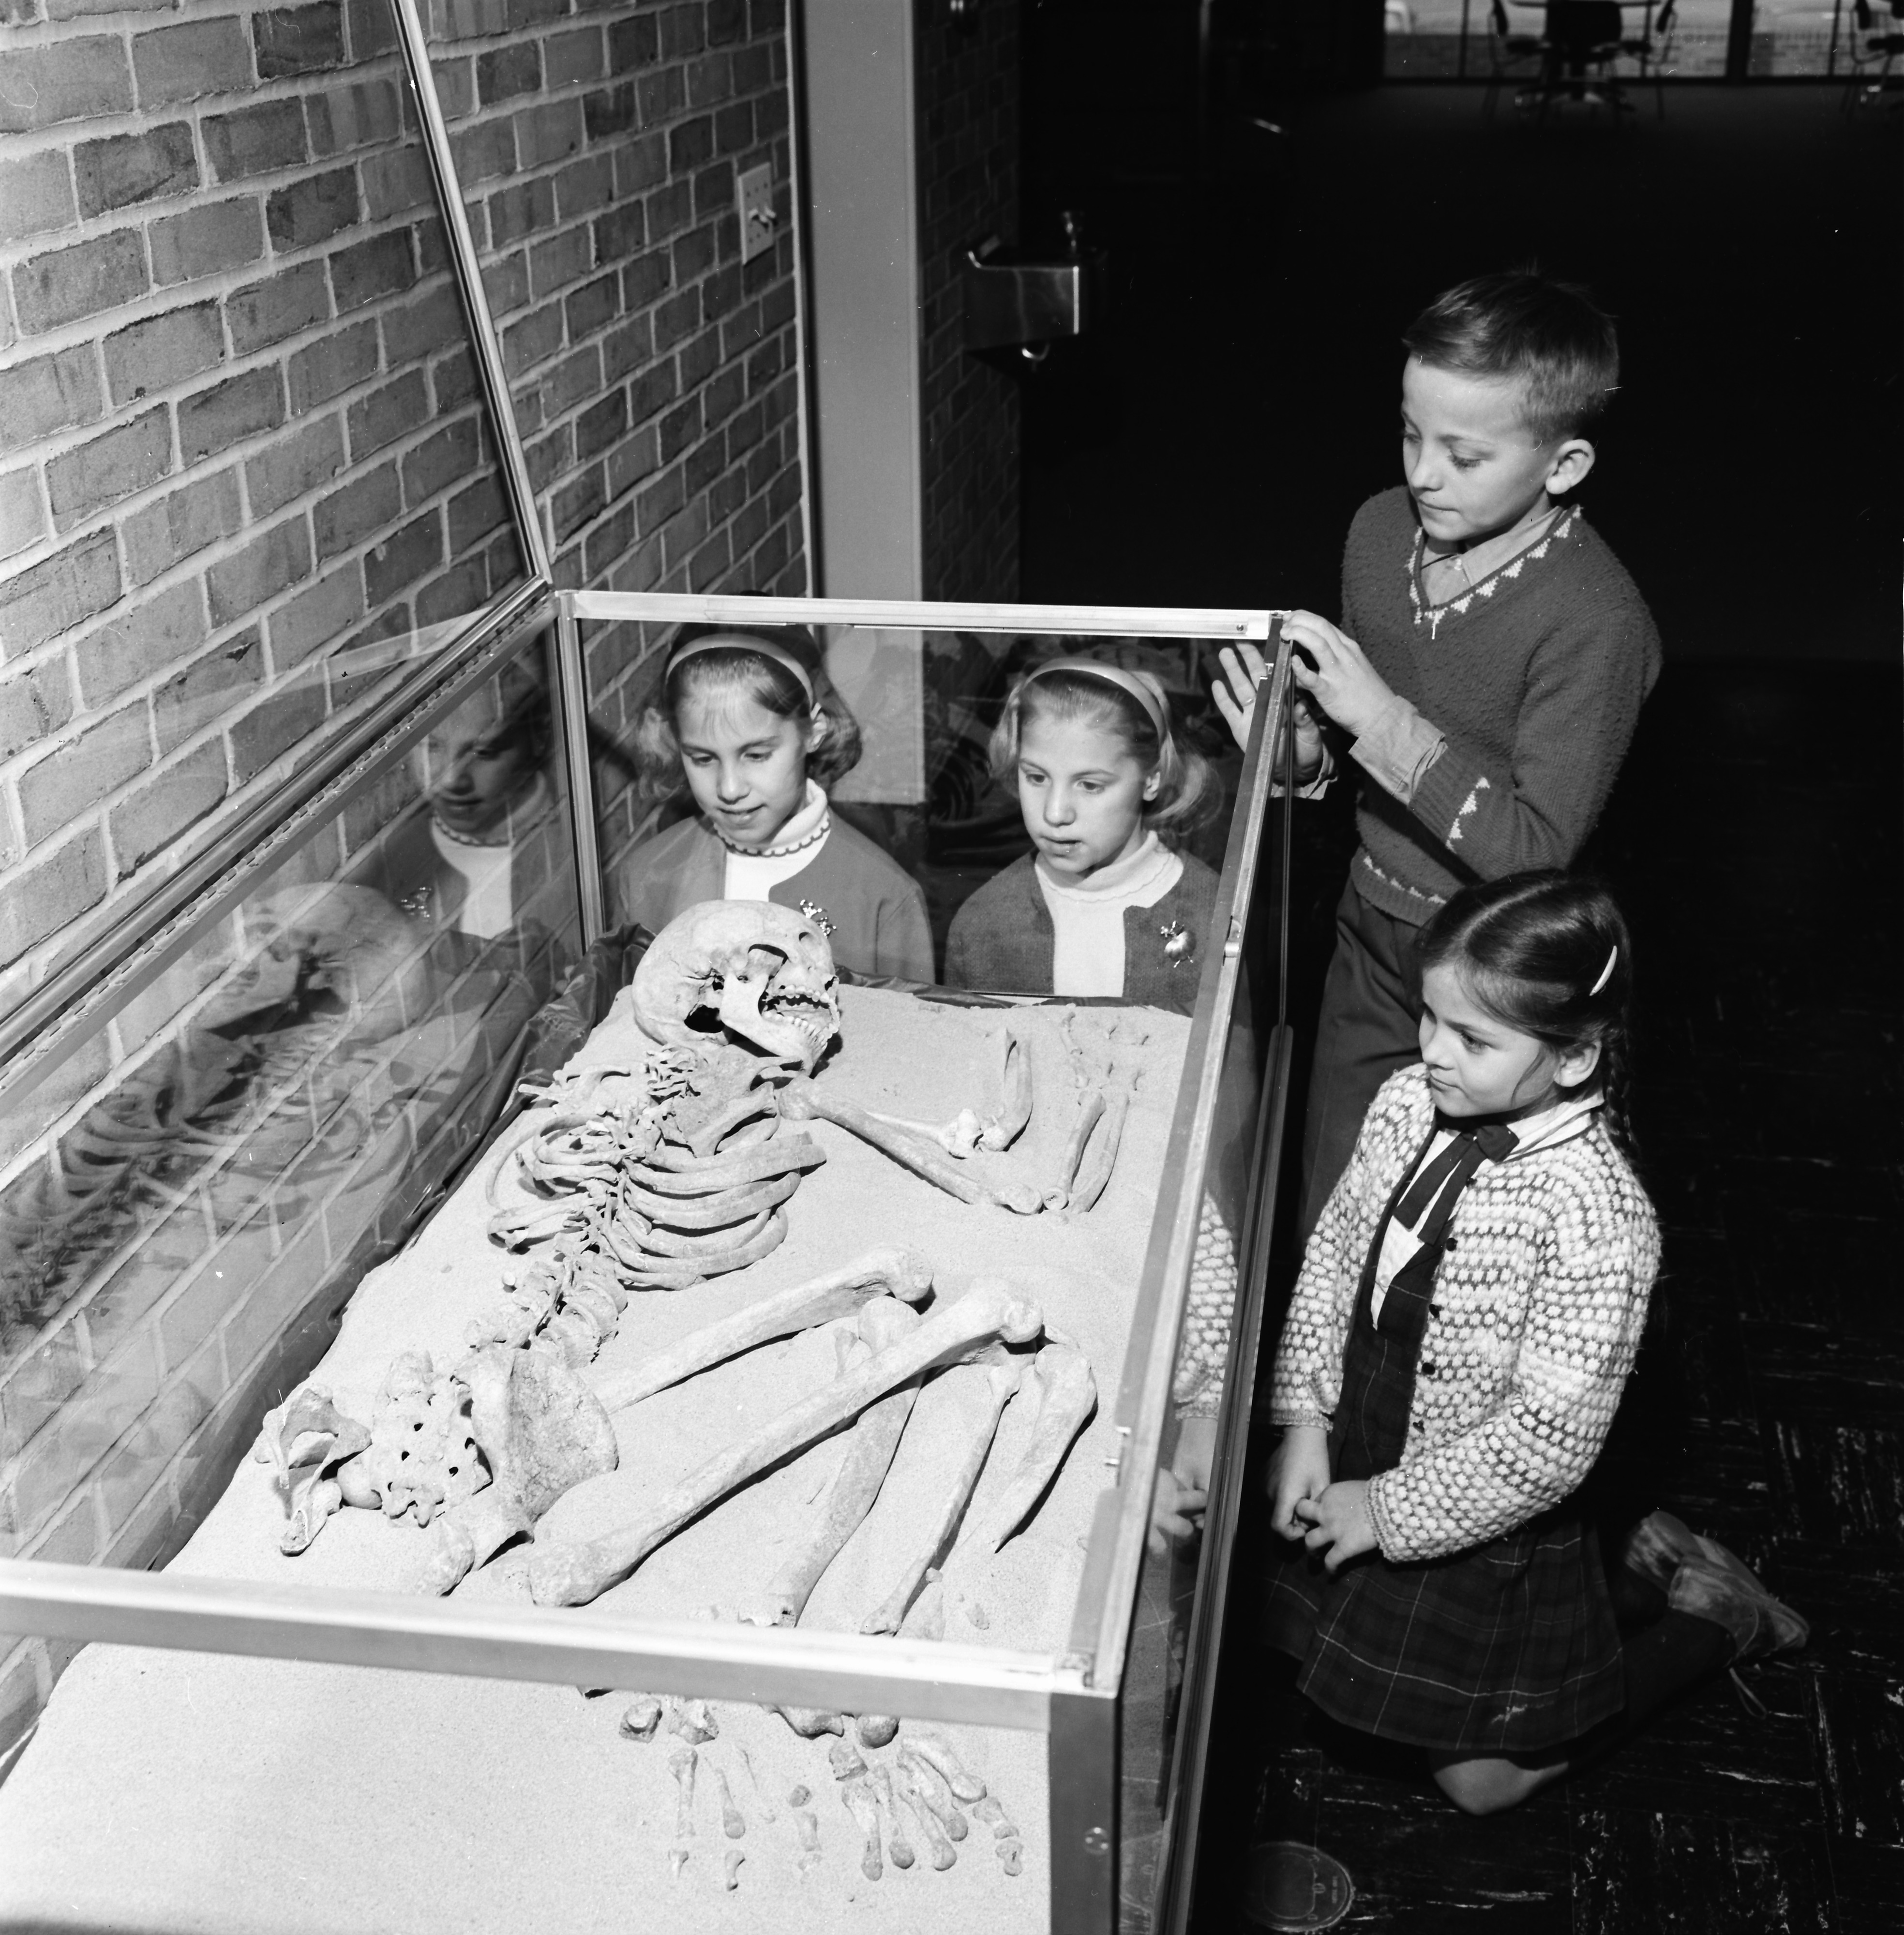 Children View Native American Skeleton at Loving Branch Library, April 1966 image